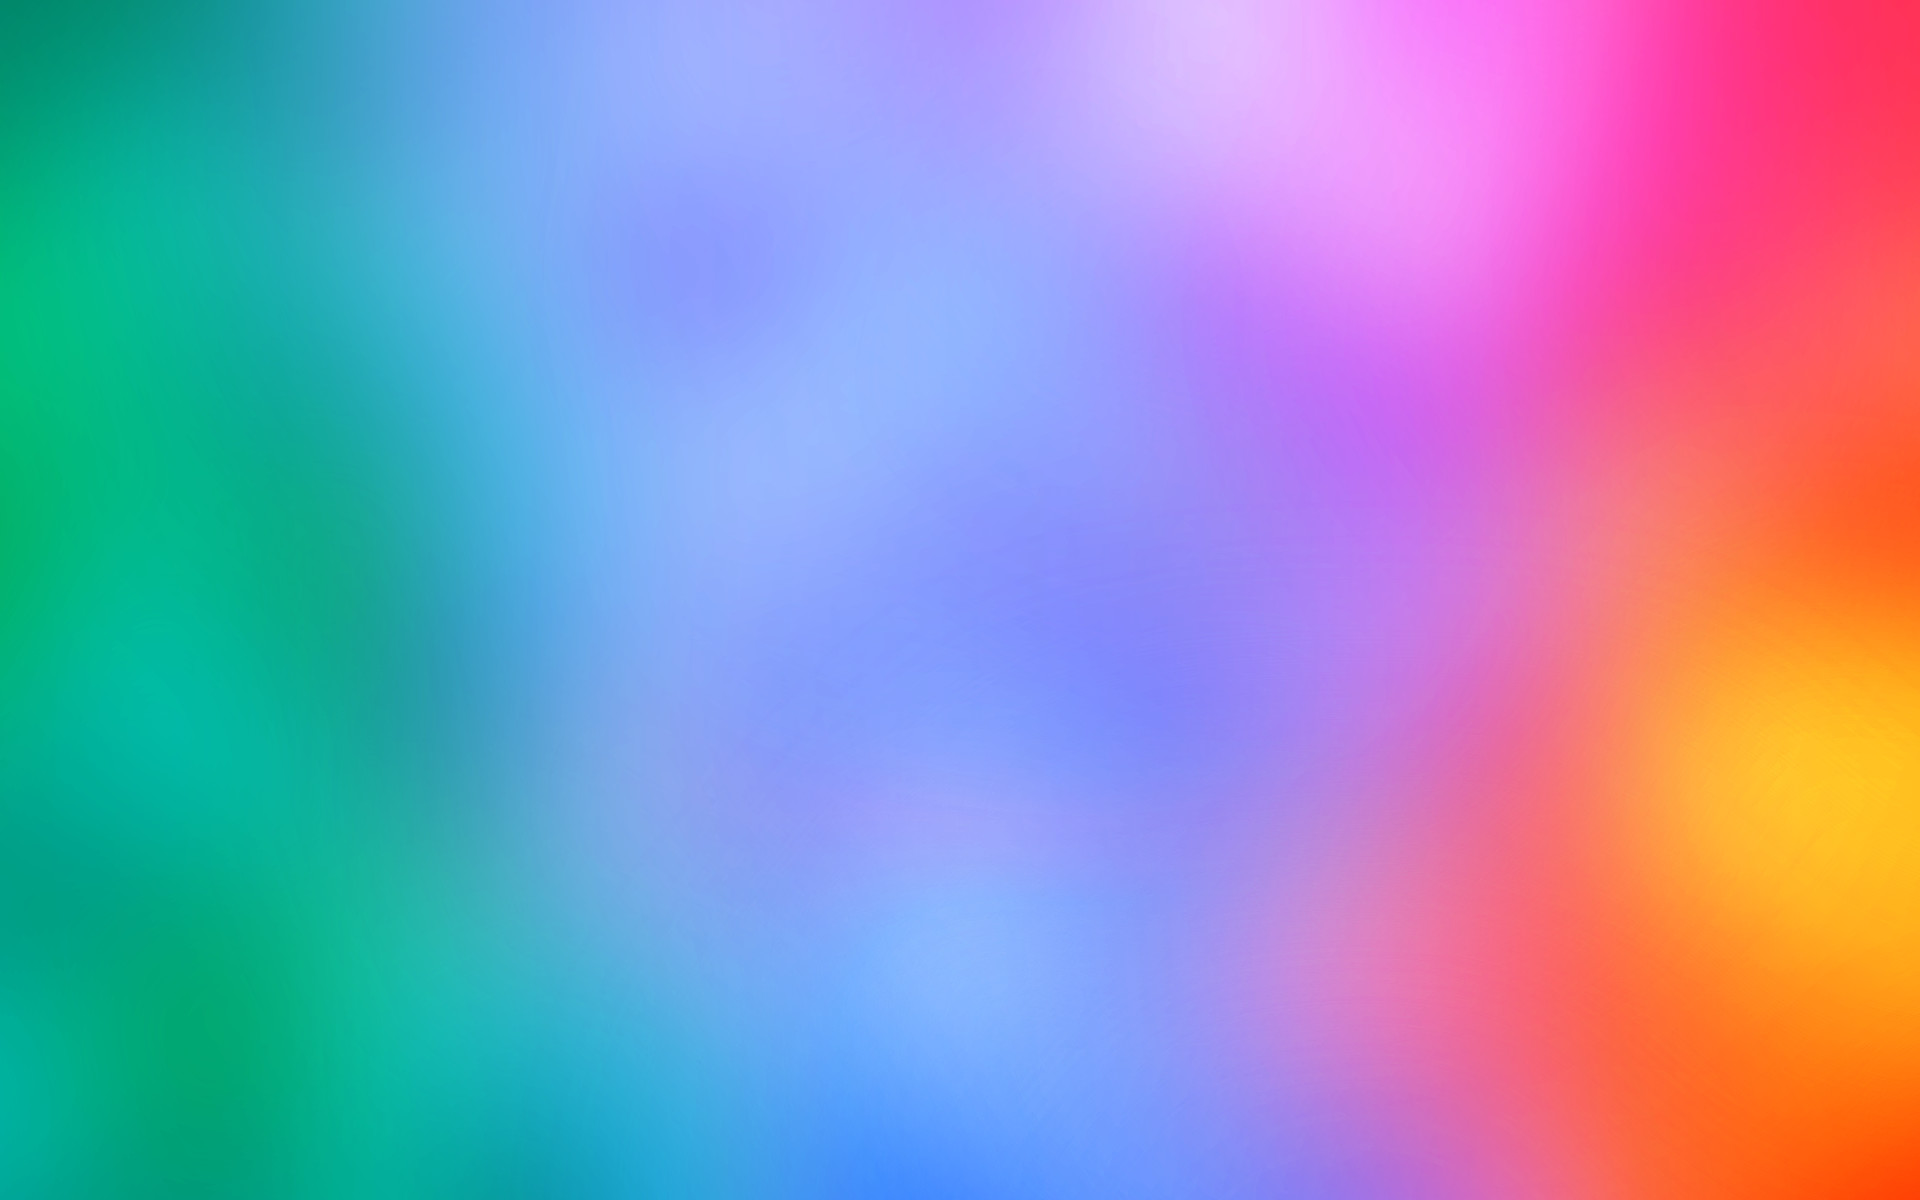 rainbows backgrounds (51+ images)